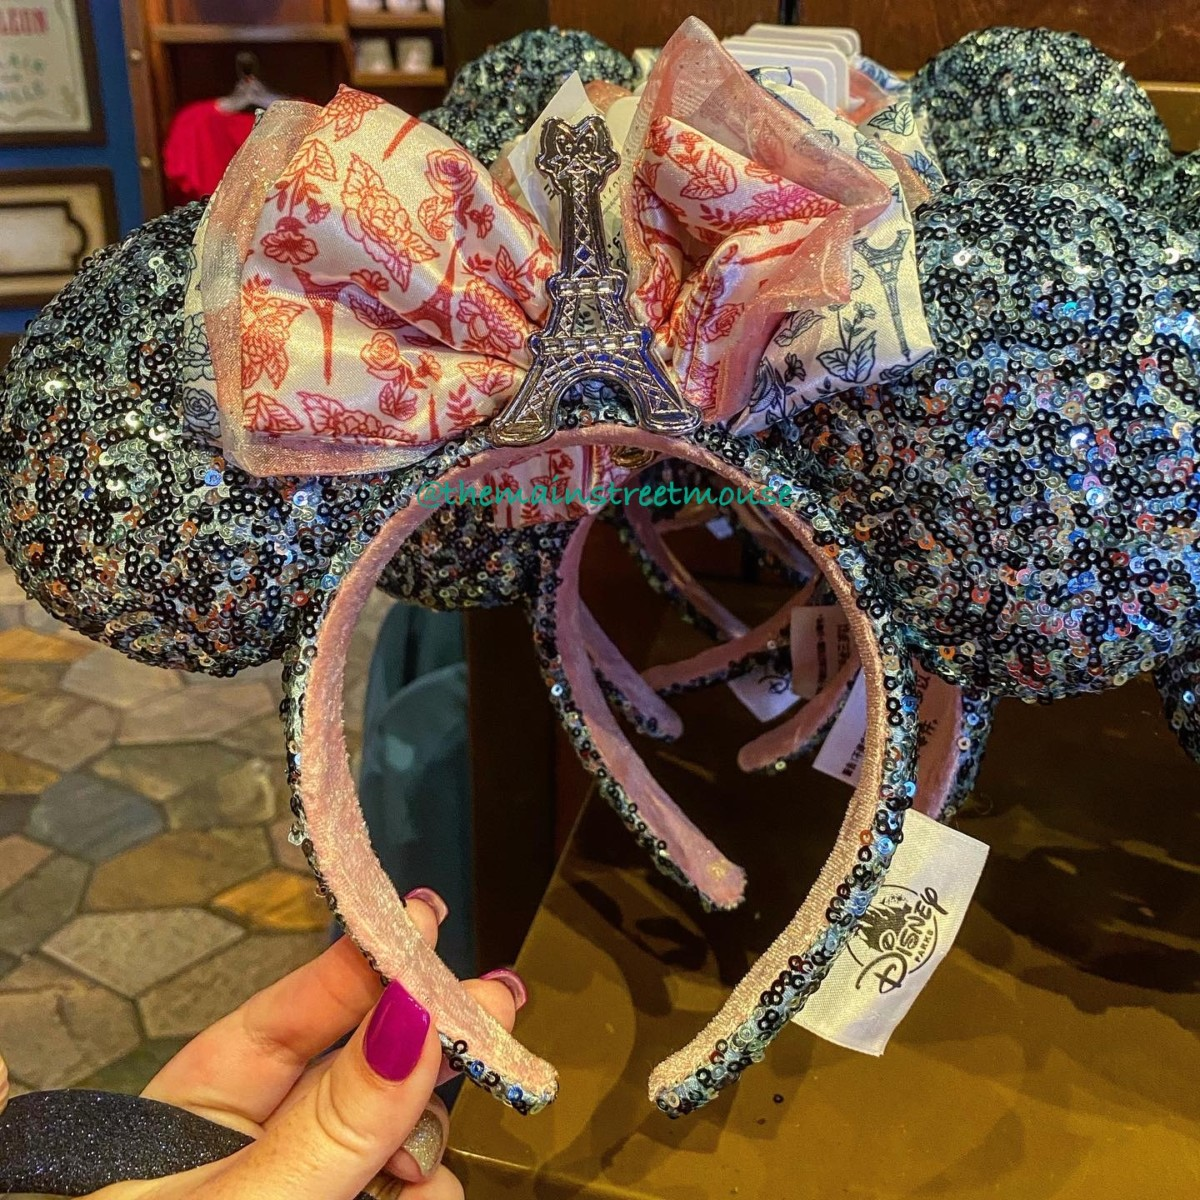 More NEW Minnie Ear Headbands at Walt Disney World! #disneystyle 3